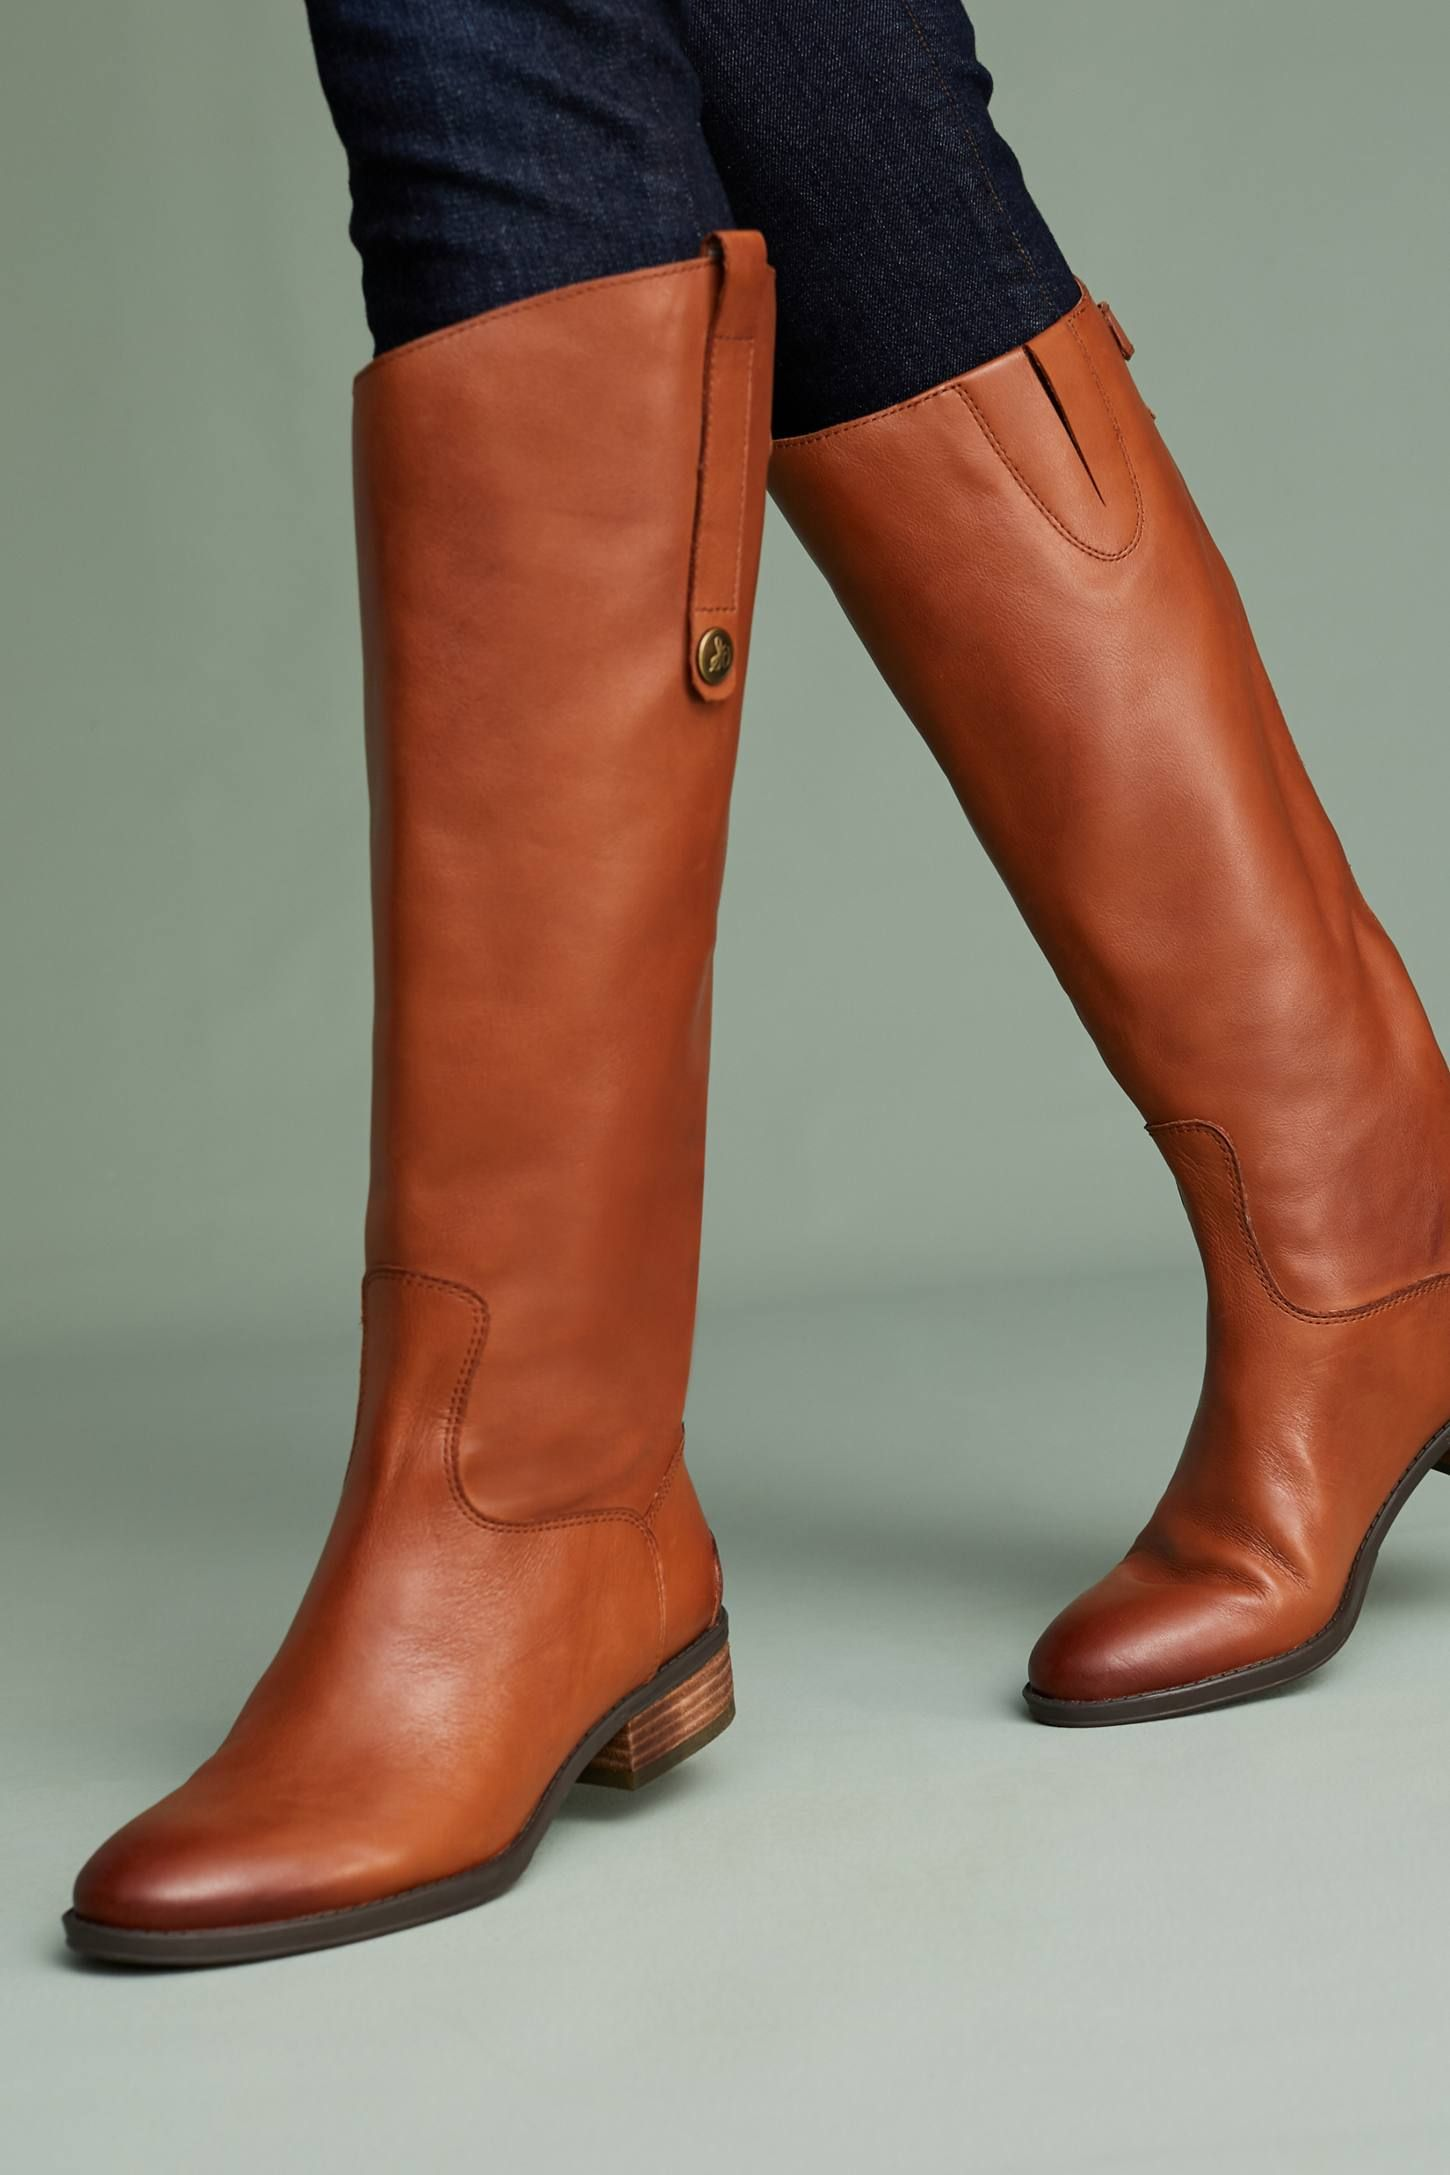 2874050d0c09 Look at these fall womens fashion 8715. Sam Edelman Penny Riding Boots